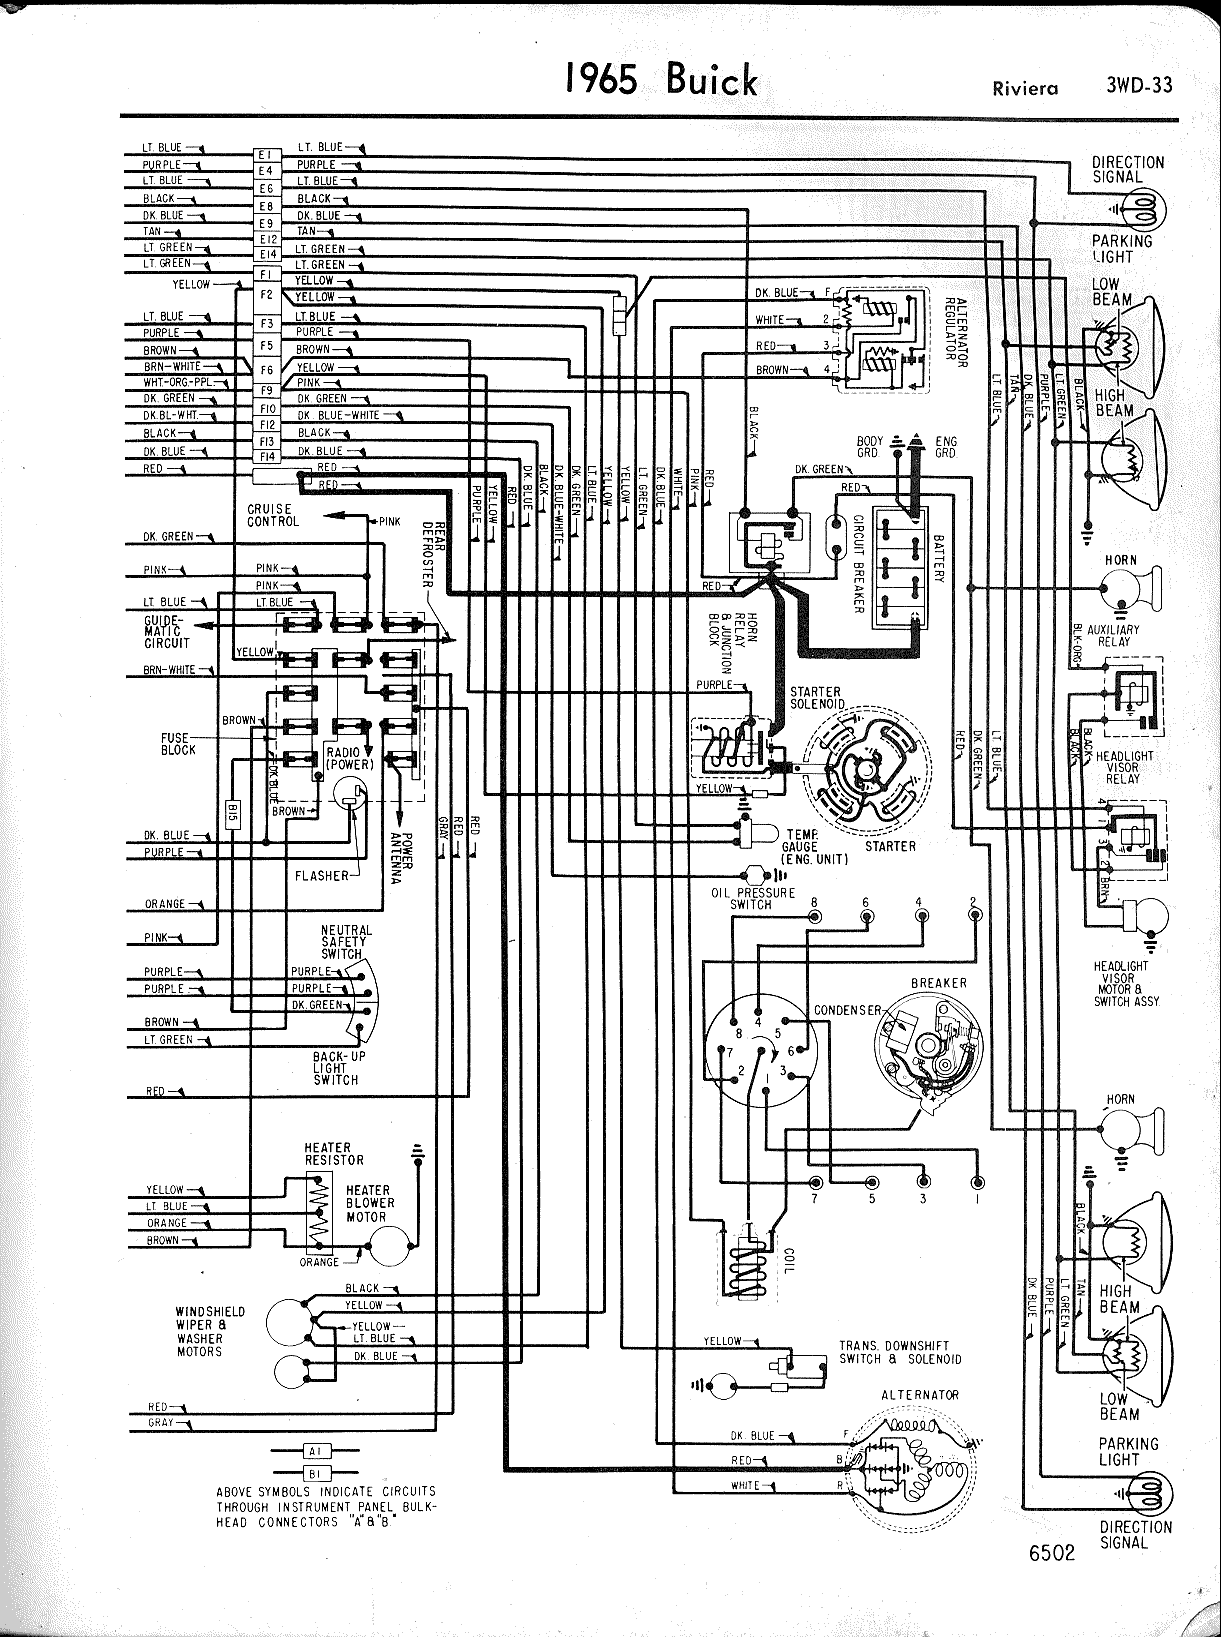 1965 Buick Skylark Wiring Diagram Wire Data Schema 1954 Diagrams 1957 Rh Oldcarmanualproject Com Electra Ignition System Schematic 1969